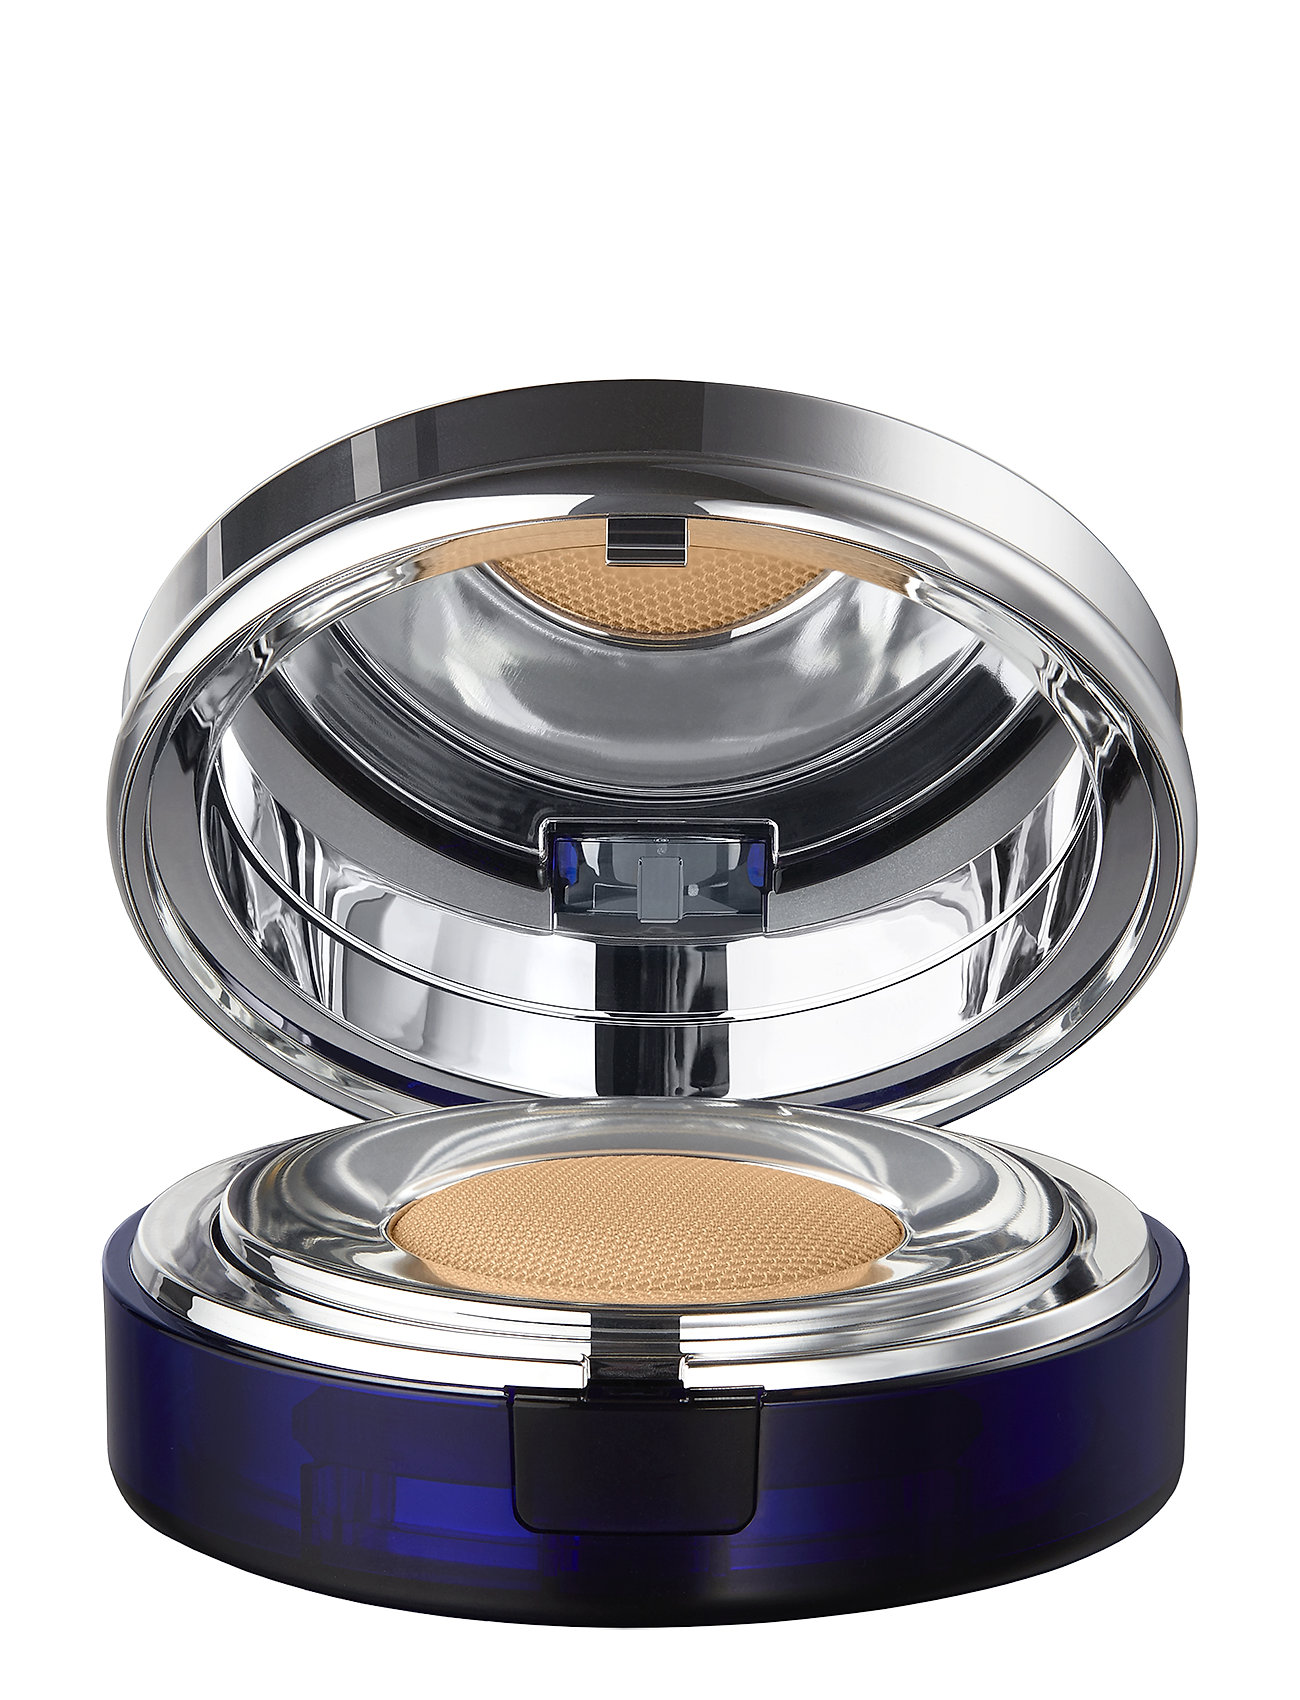 Image of Essence In Foundation Almond Beige Compact Foundation Foundation Makeup La Prairie (3067524561)